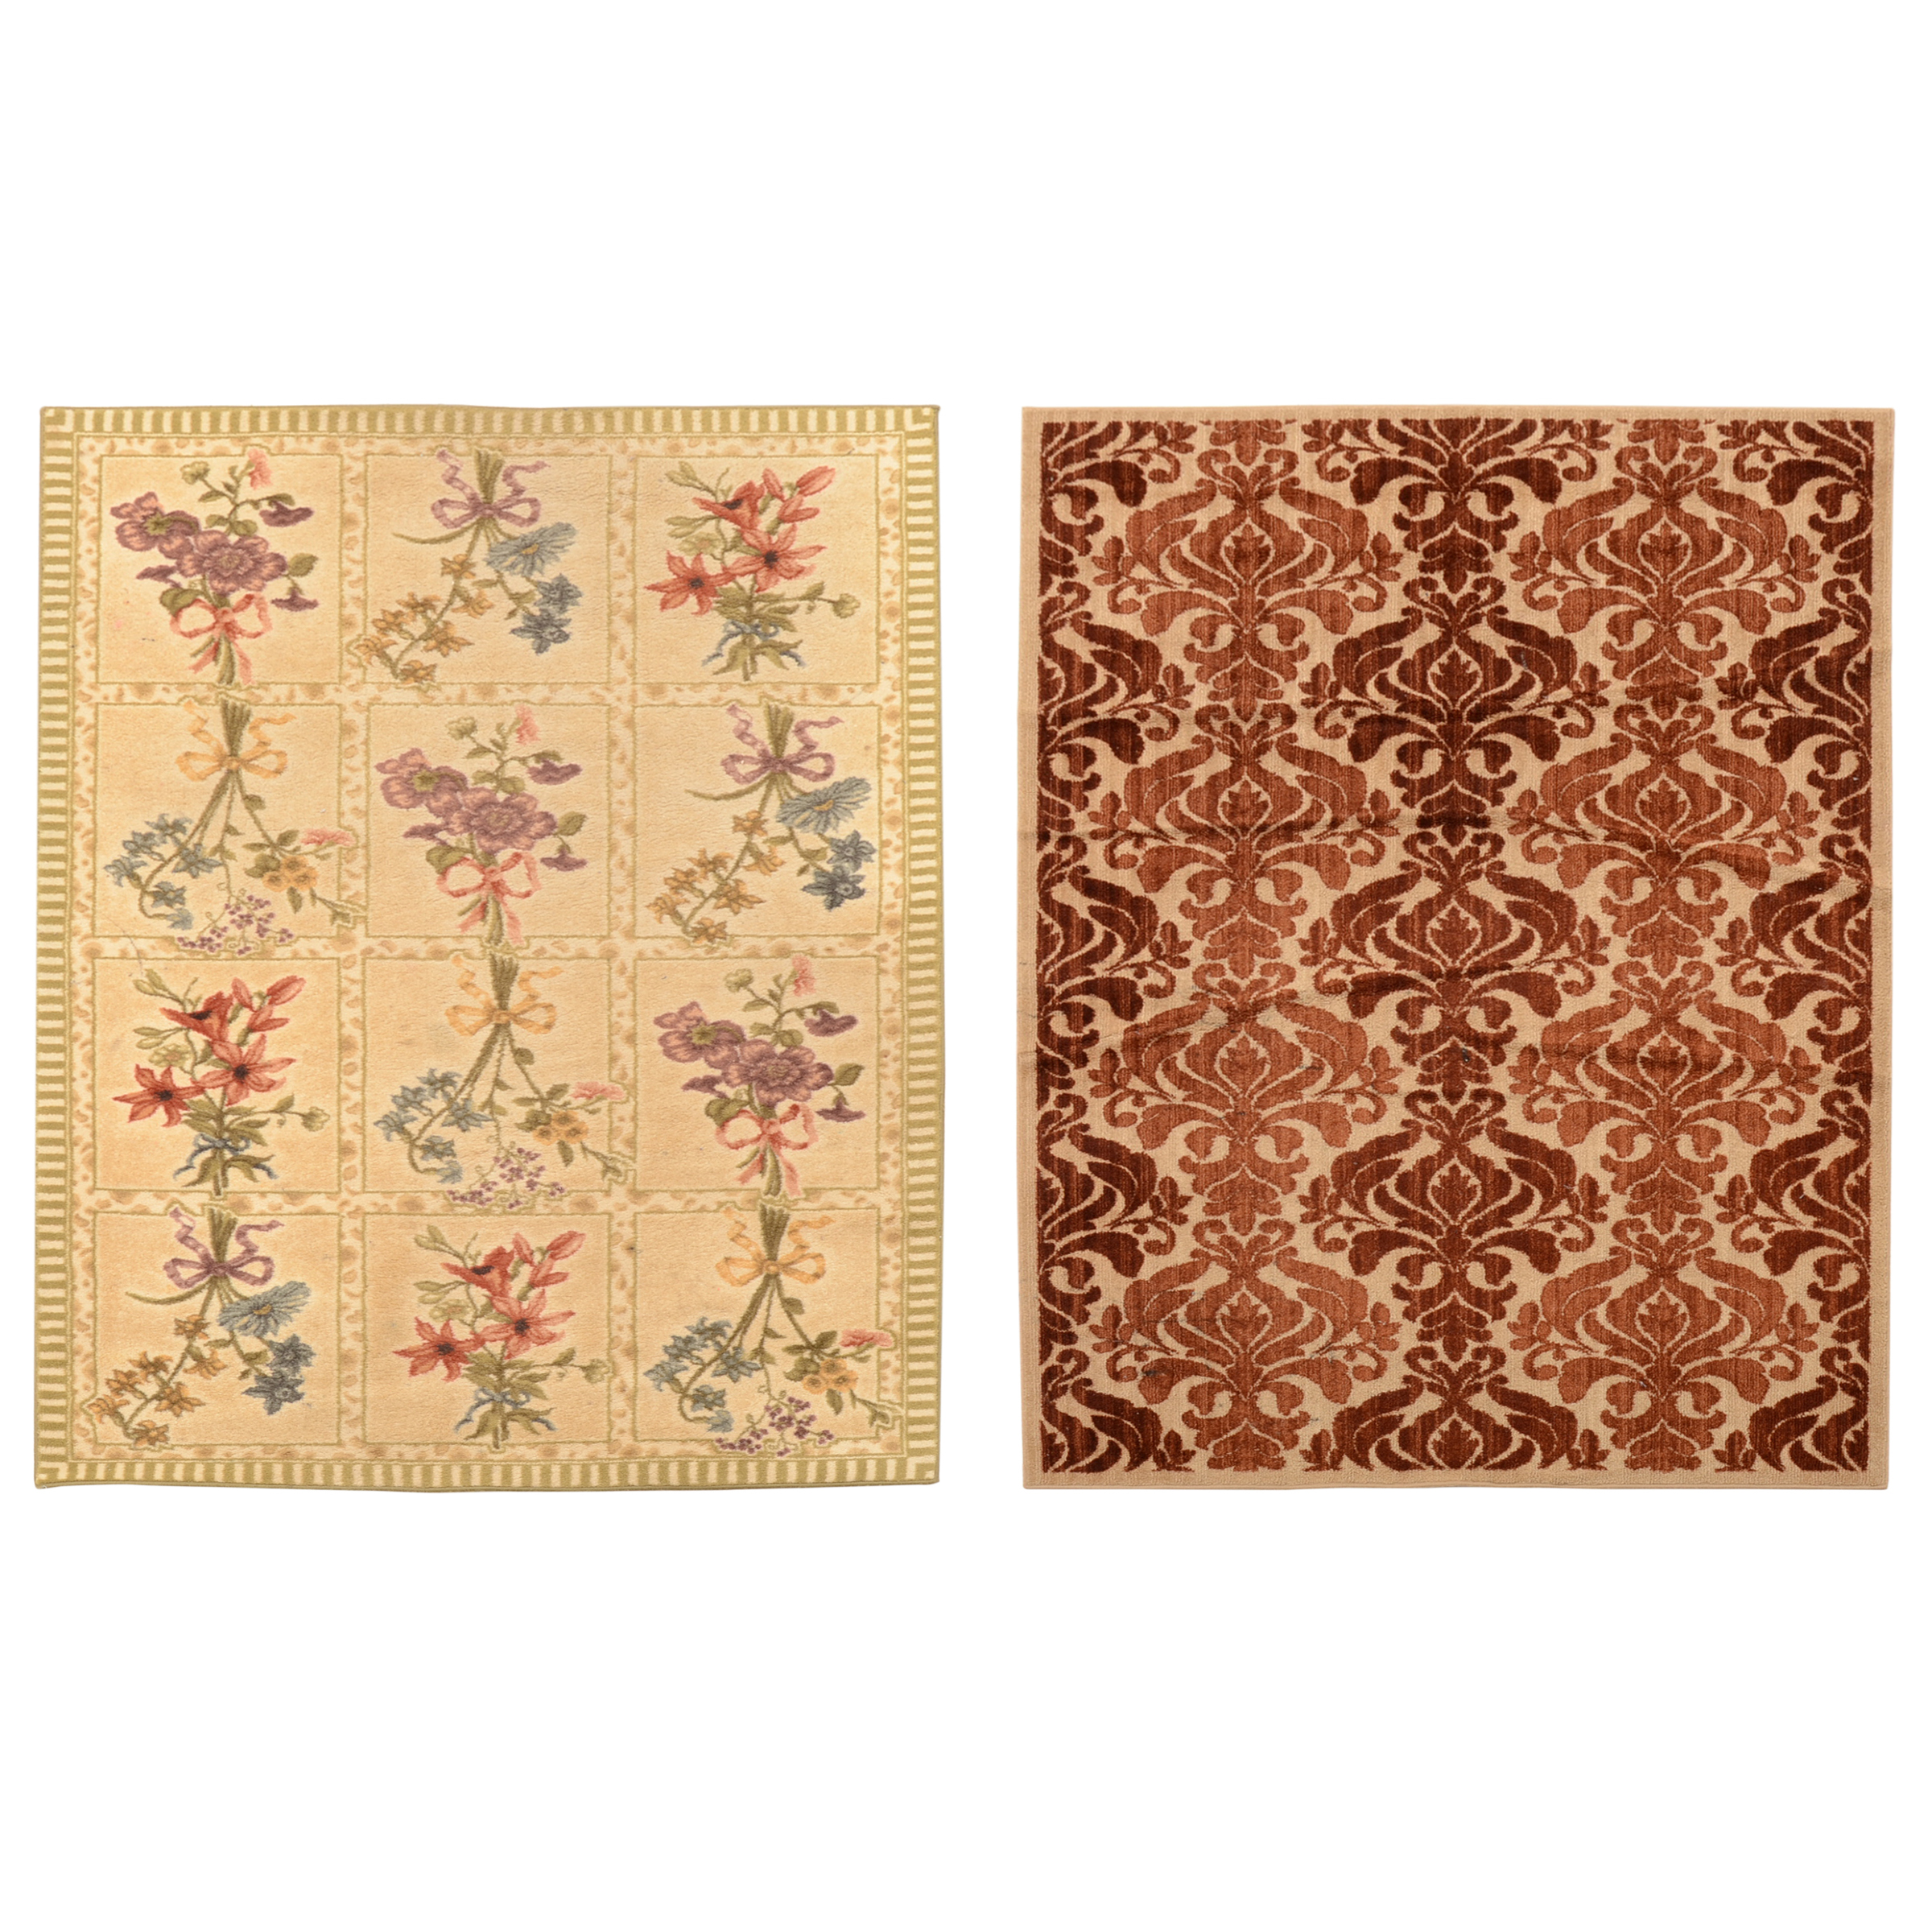 Beaulieu Of America Wool Rugs Www Picsbud Com